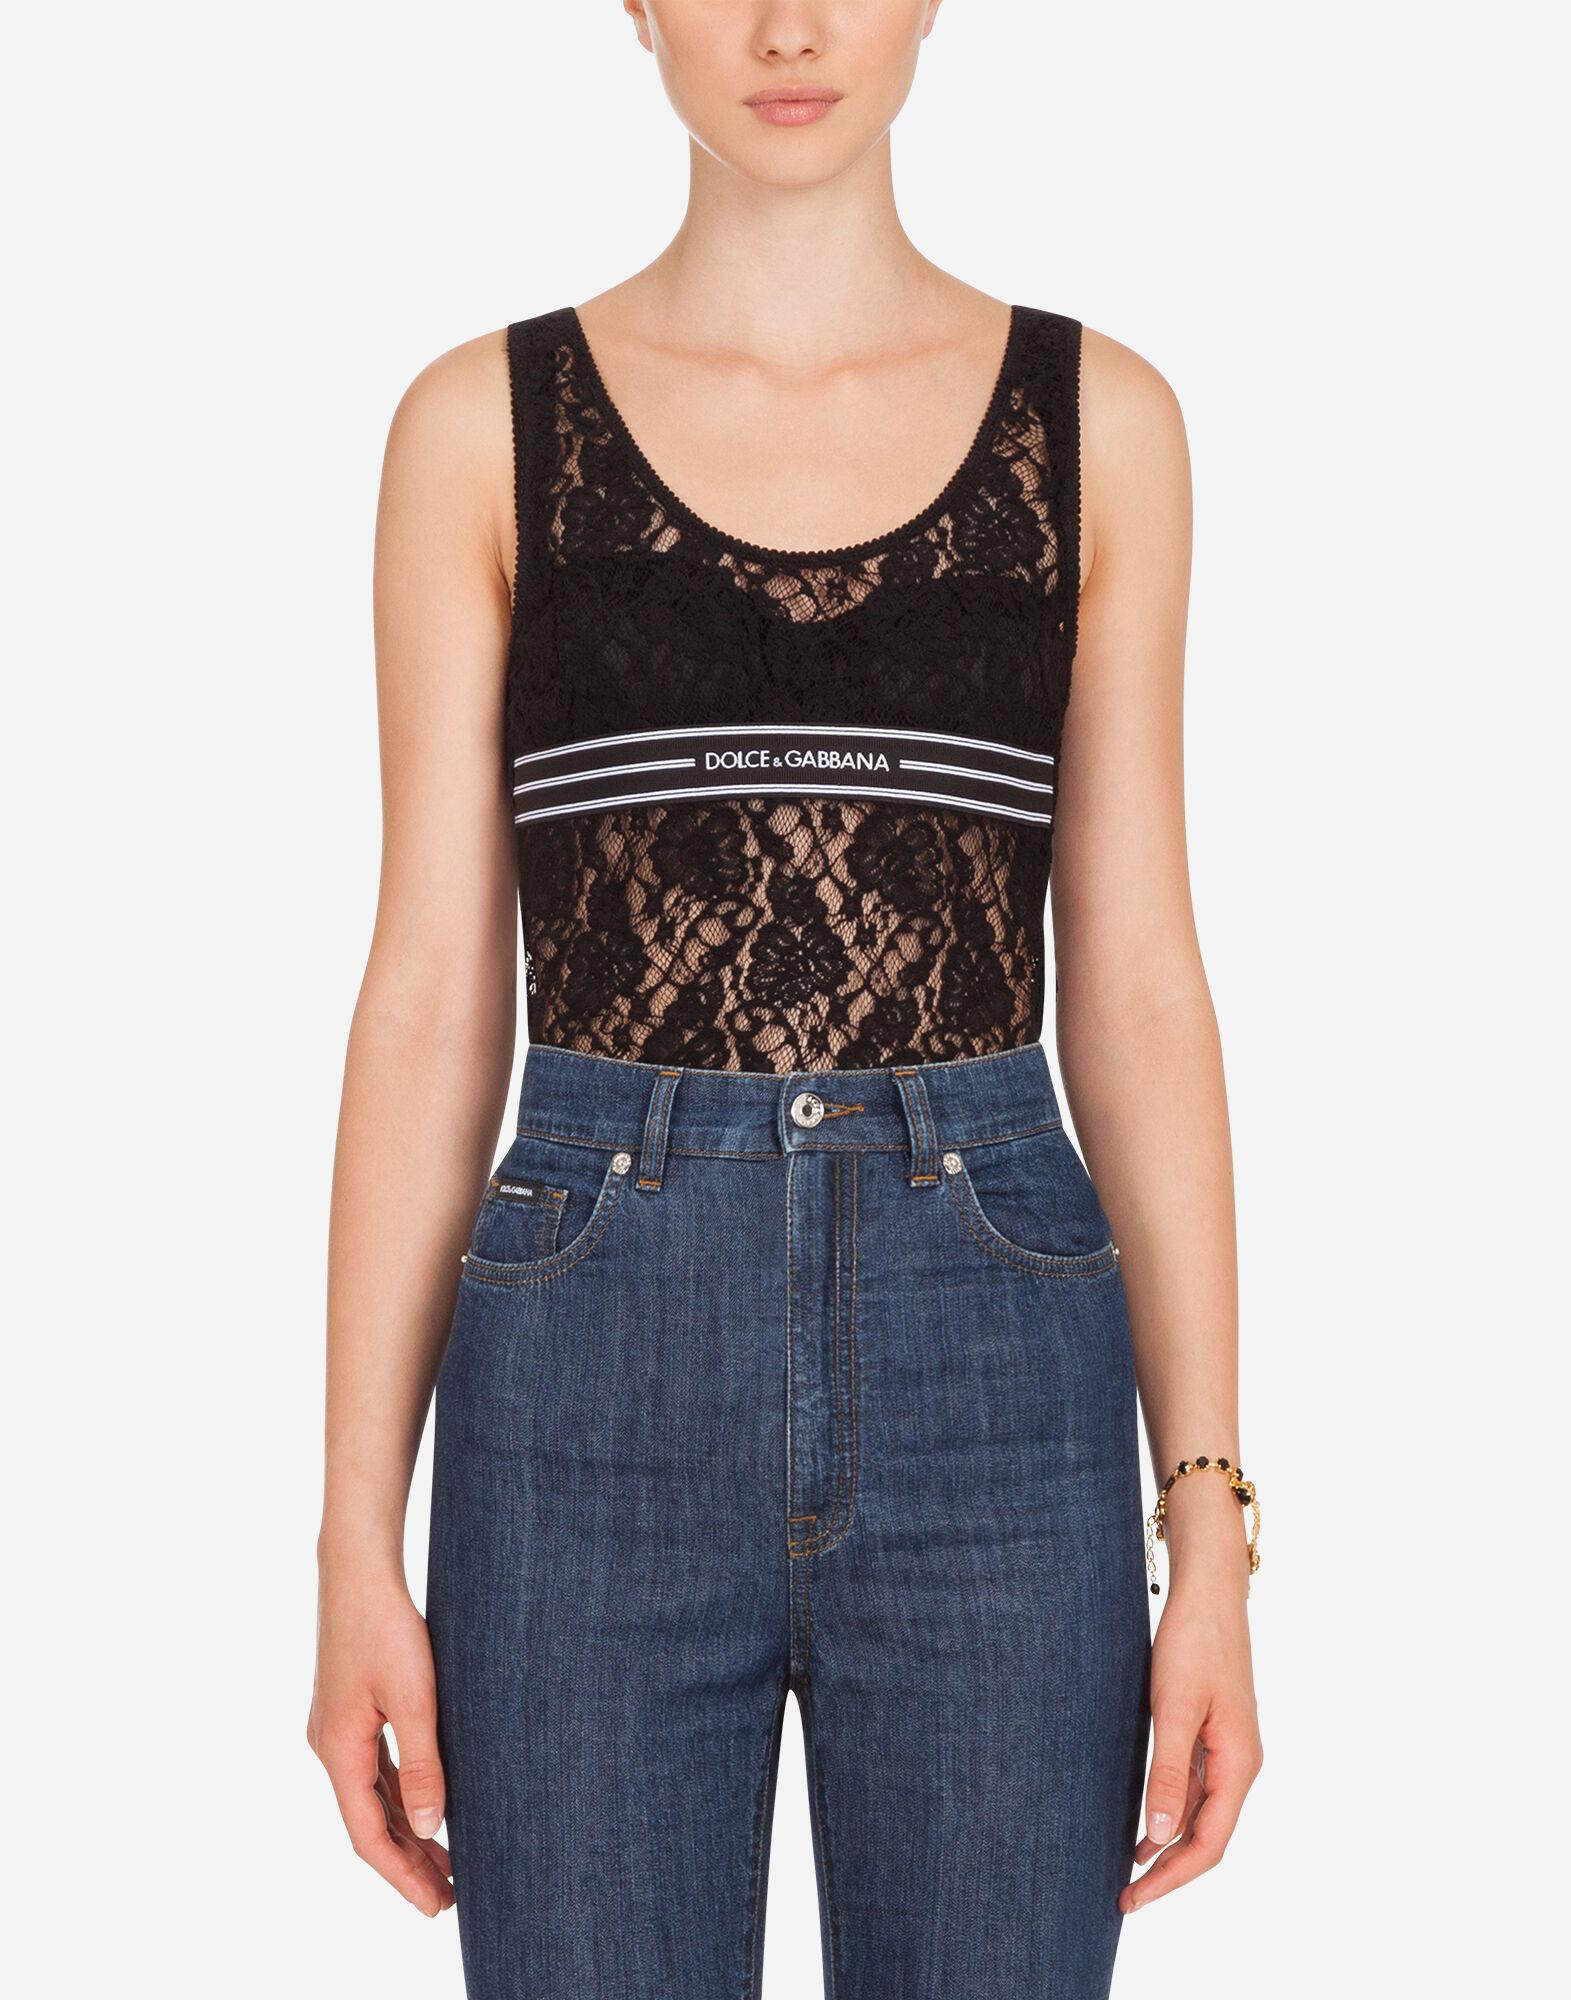 Lace top with branded elastic